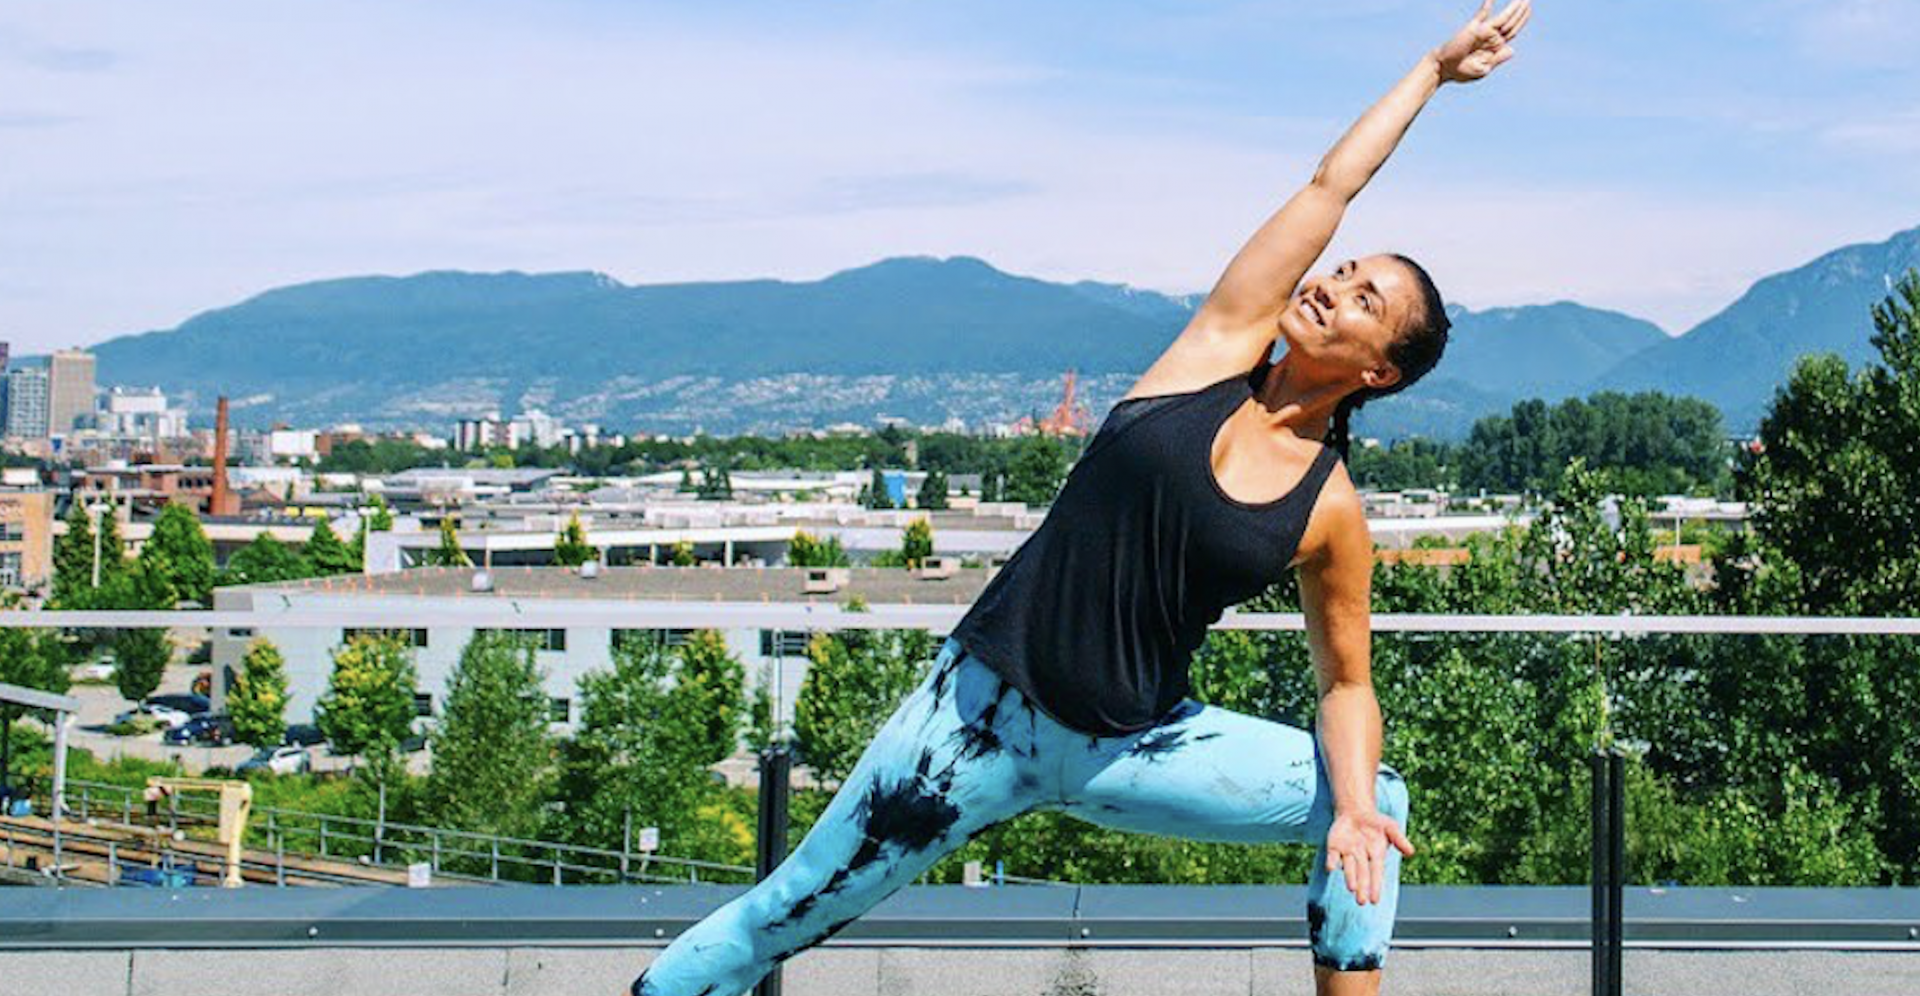 Mat Collective outdoor yoga returns to Vancouver just in time for summer